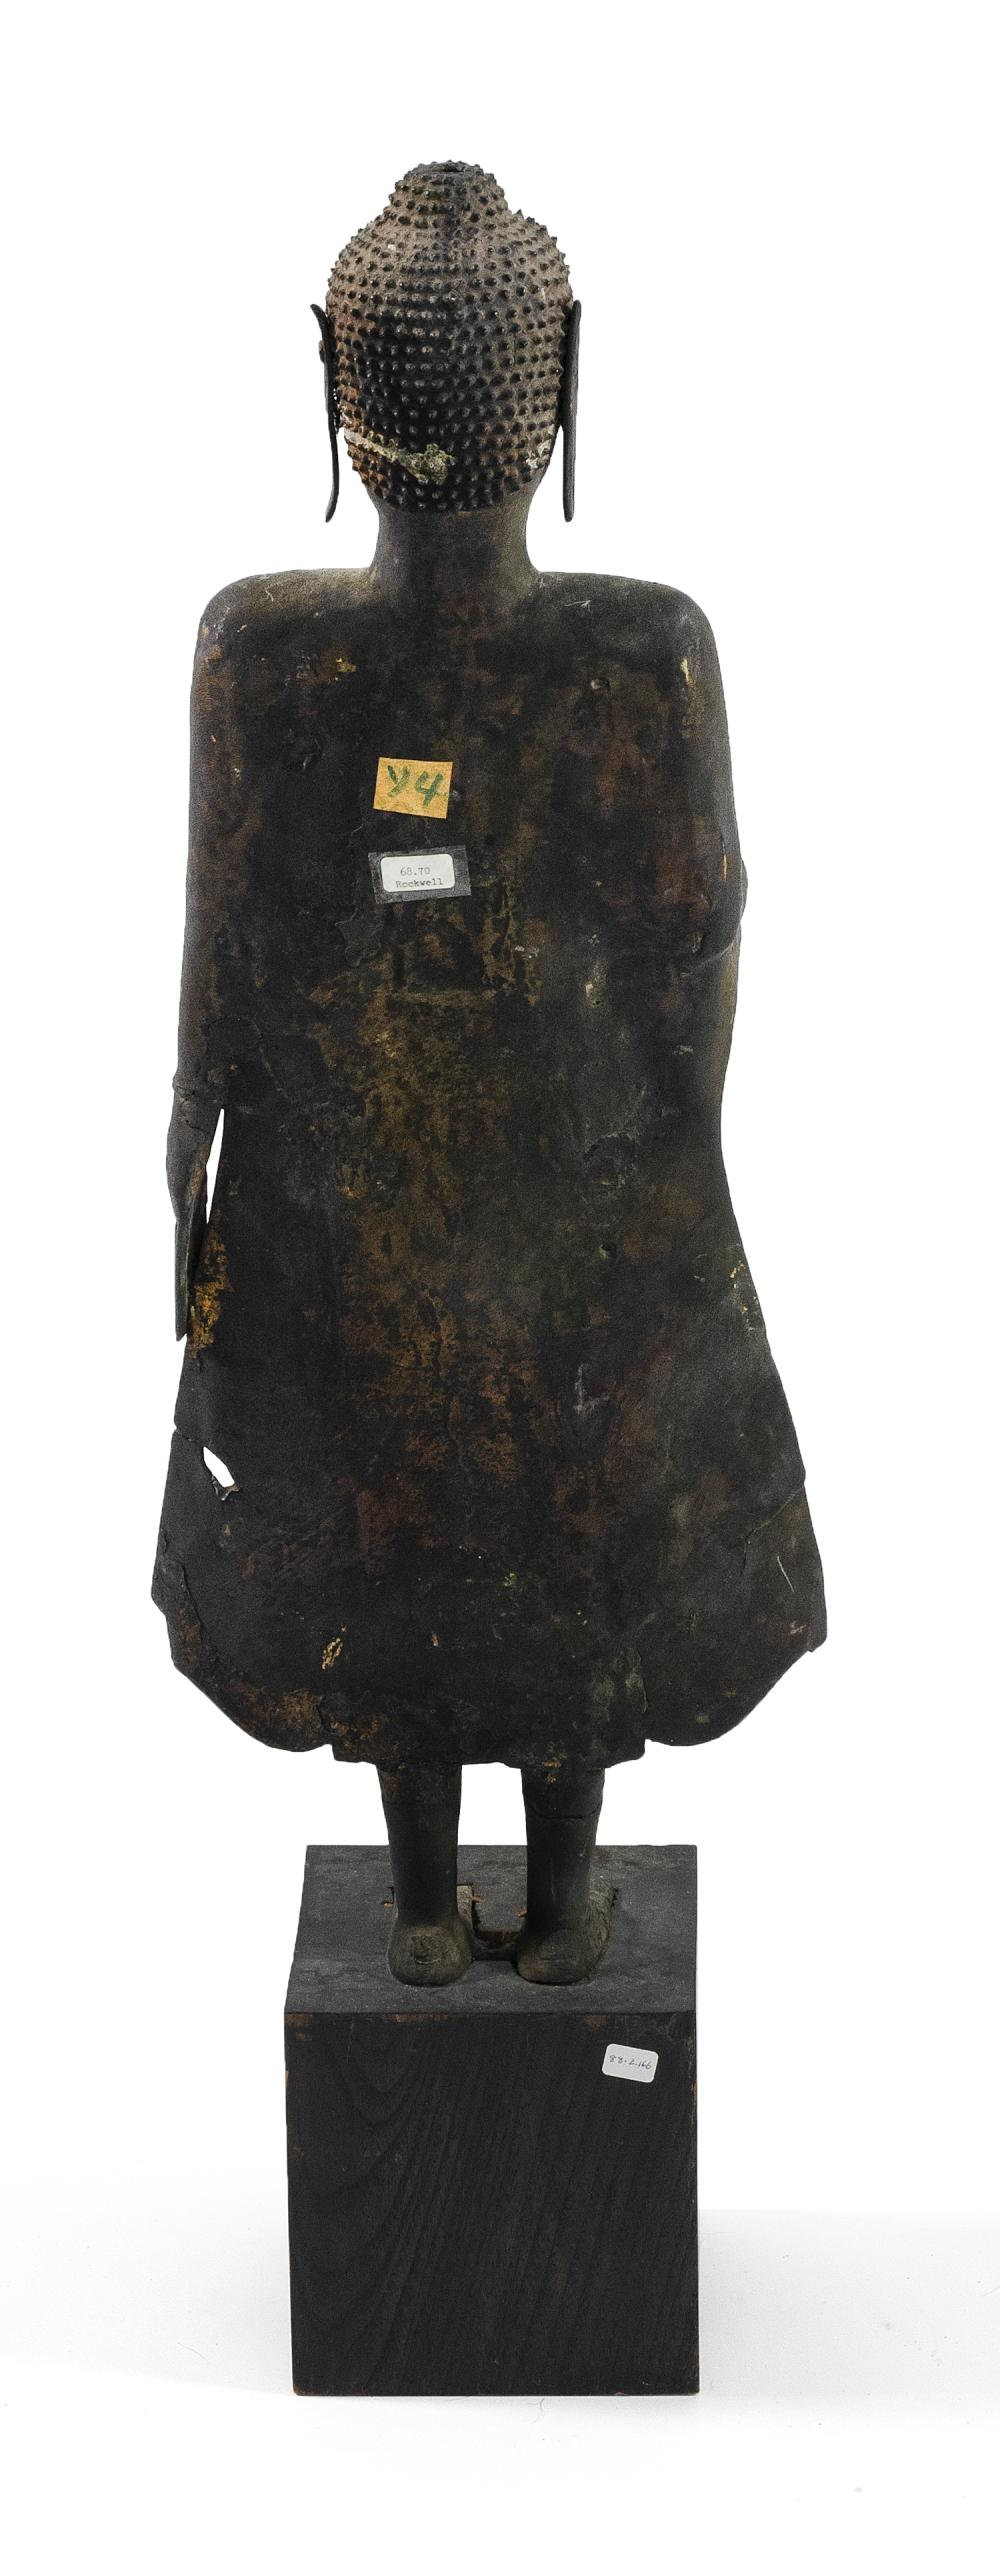 "Lot 952: THAI BRONZE FIGURE OF BUDDHA Standing and in a flared skirt. Height 27"", not inclusive of base."